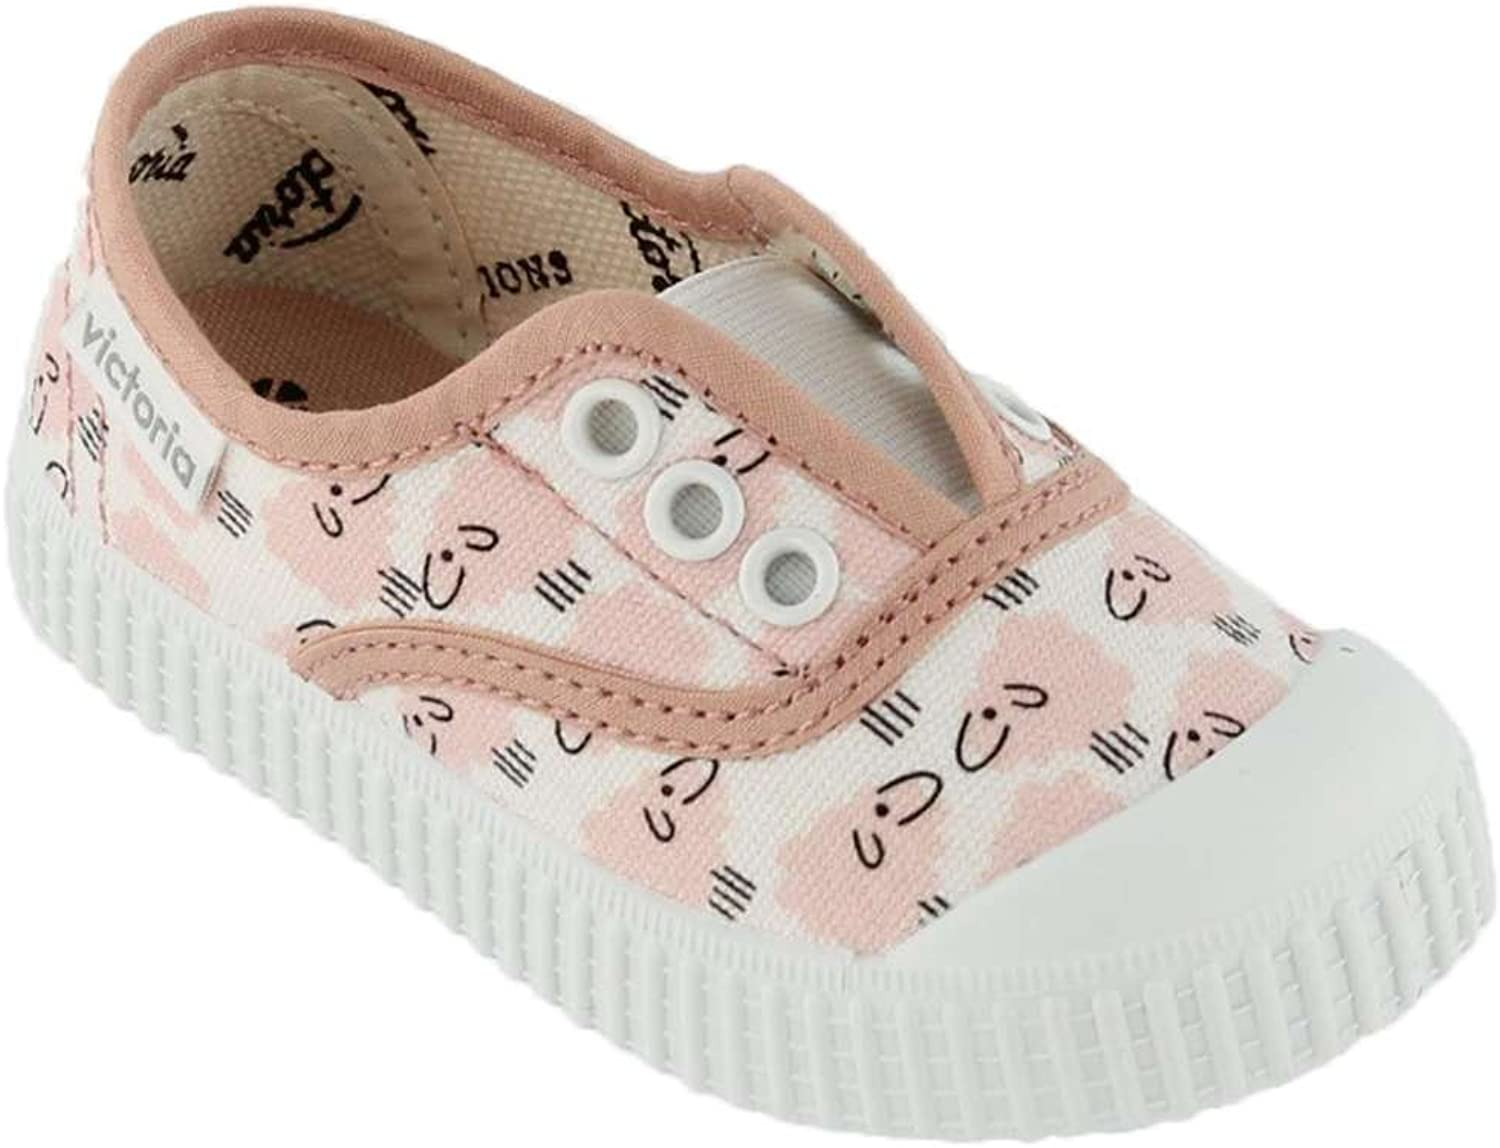 Victoria Girls Slip On Canvas Shoes